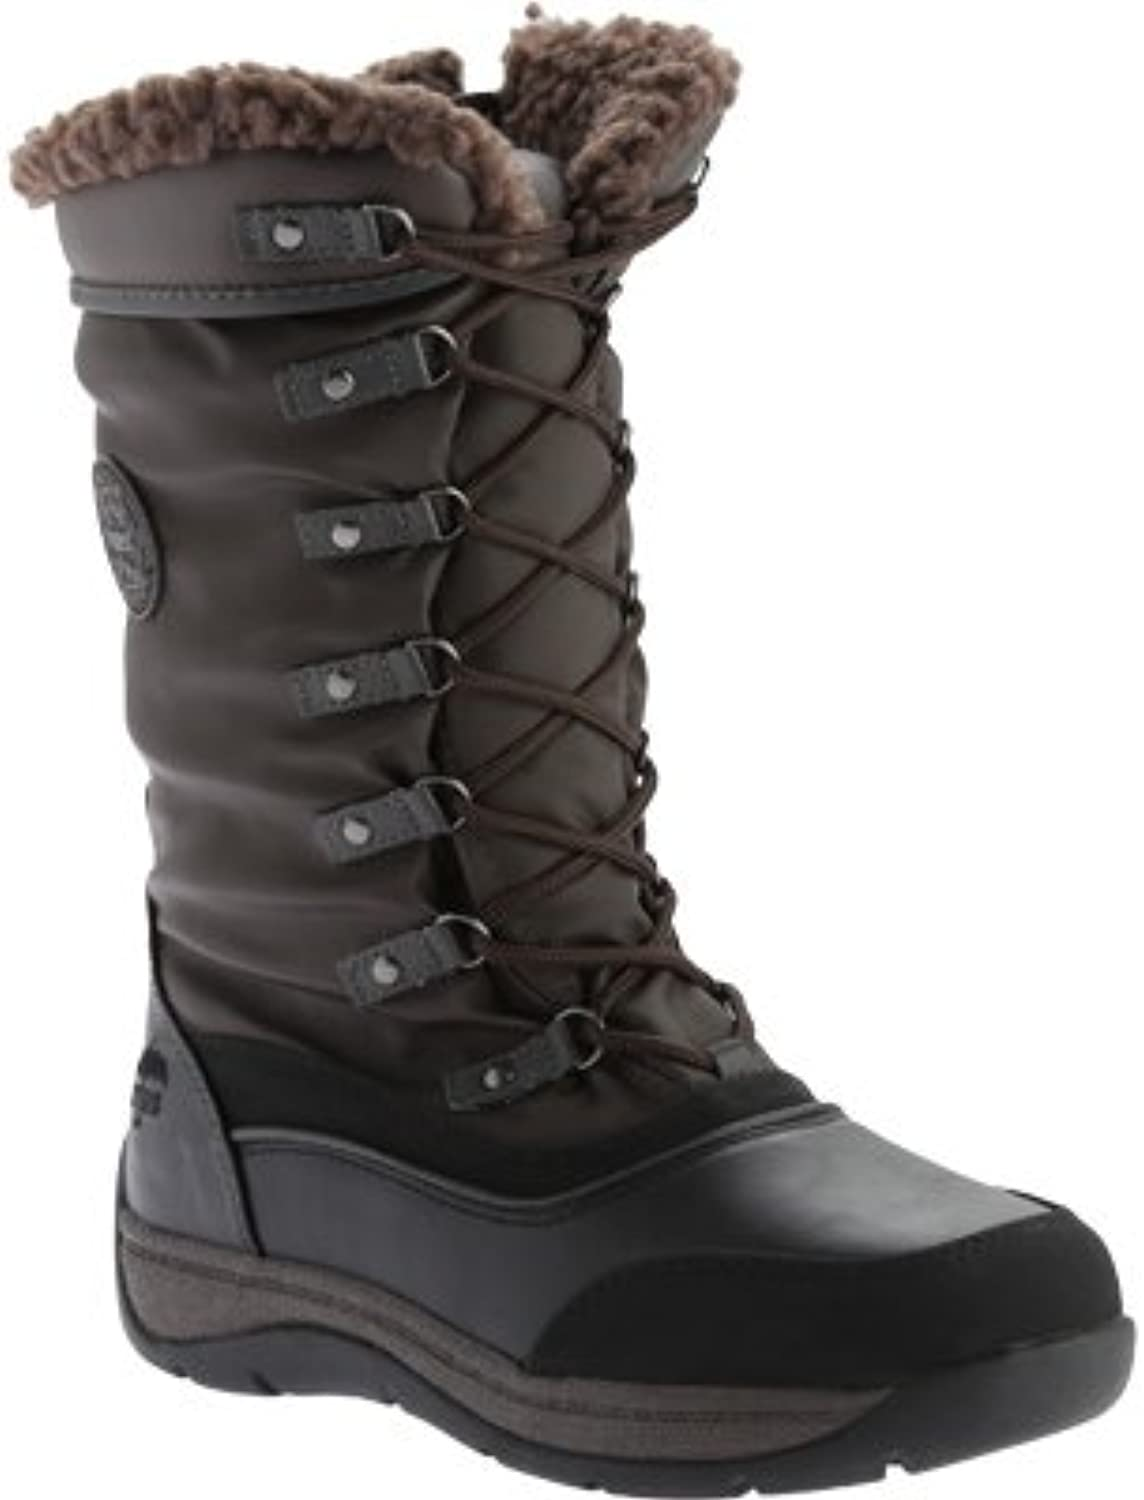 Totes Womens Michelle Closed Toe Mid-Calf Cold Weather Boots